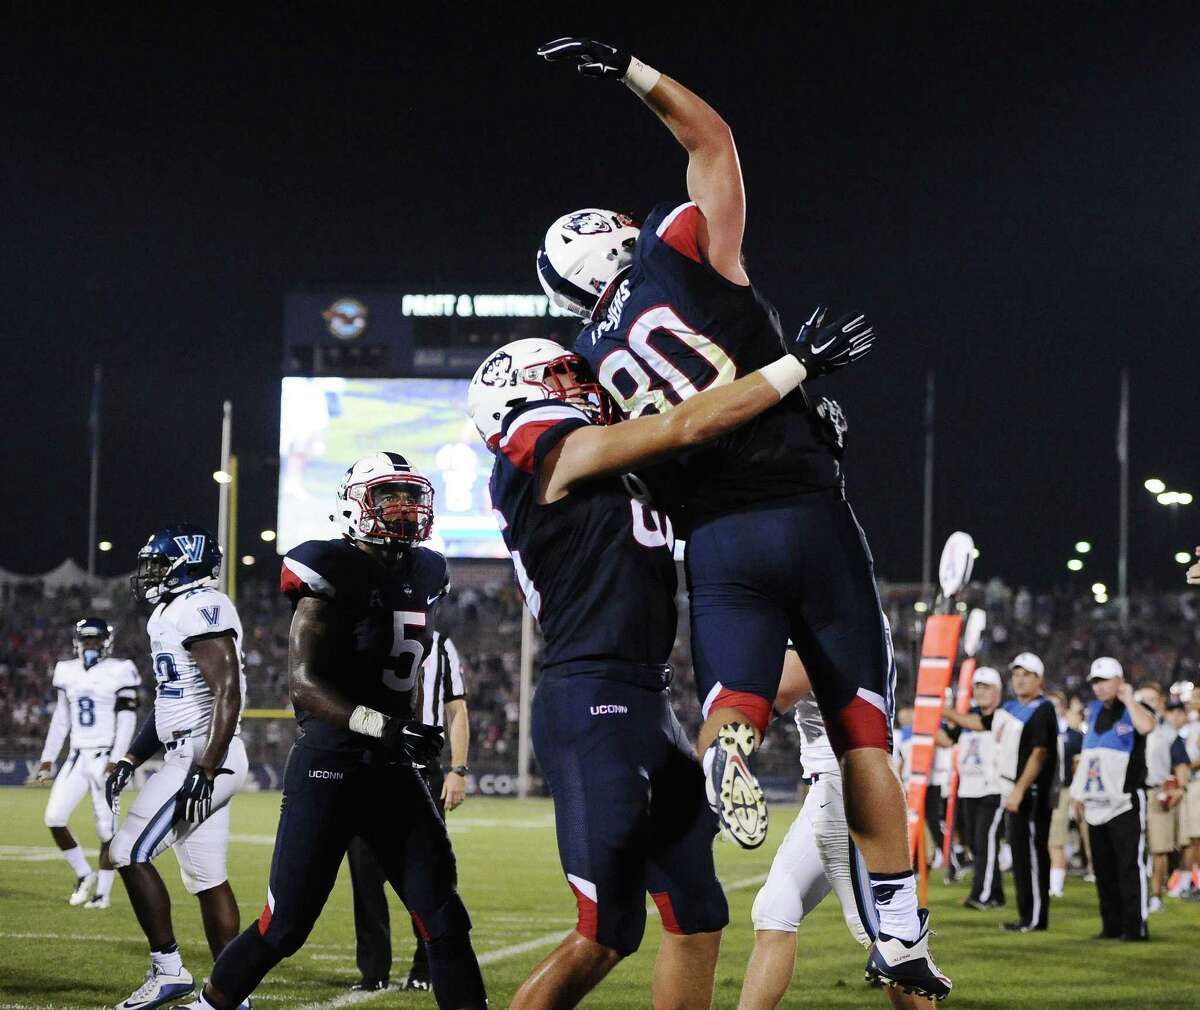 UConn tight end Tommy Myers, right, celebrates with Alec Bloom (86) after scoring a touchdown during the first half Thursday.